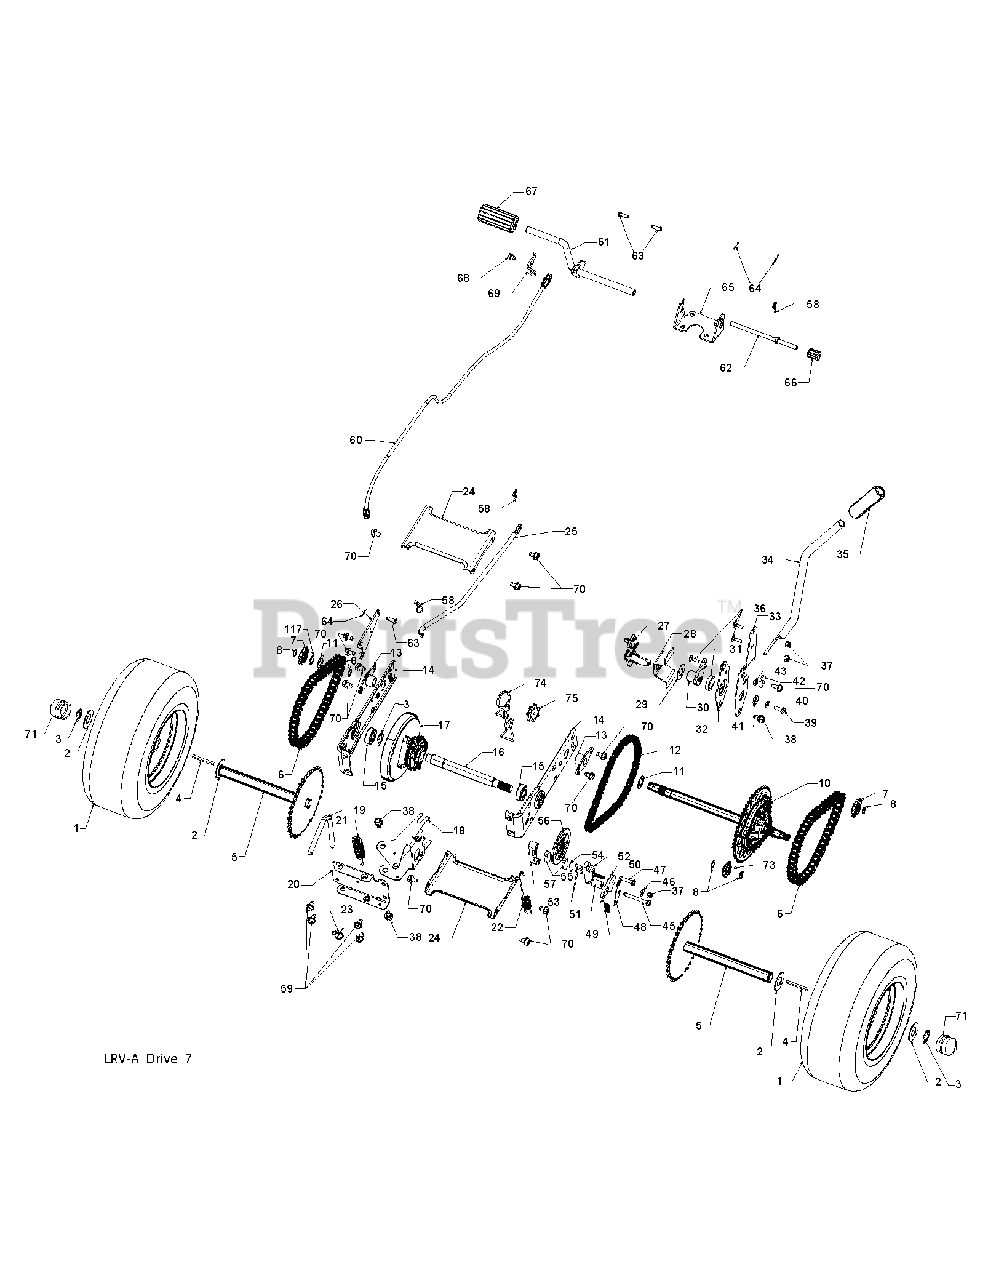 Weed Eater WE 261 (960220007-01) - Weed Eater Lawn Tractor ...